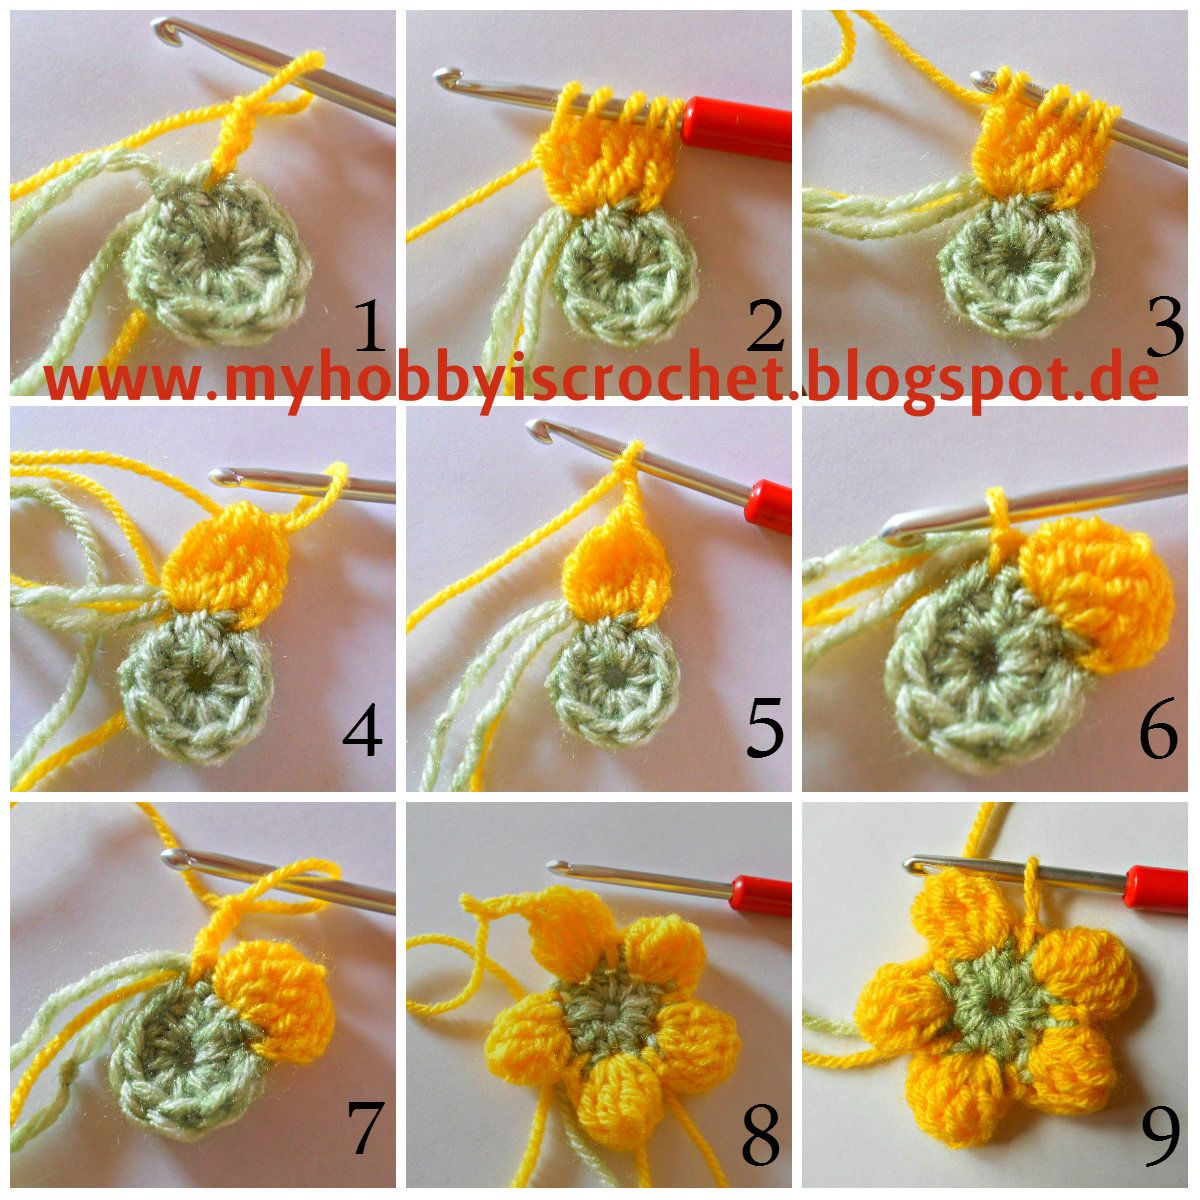 Crochet layered flower patterns my hobby is crochet crochet dahlia crochet layered flower patterns my hobby is crochet crochet dahlia flower free pattern with picture bankloansurffo Images